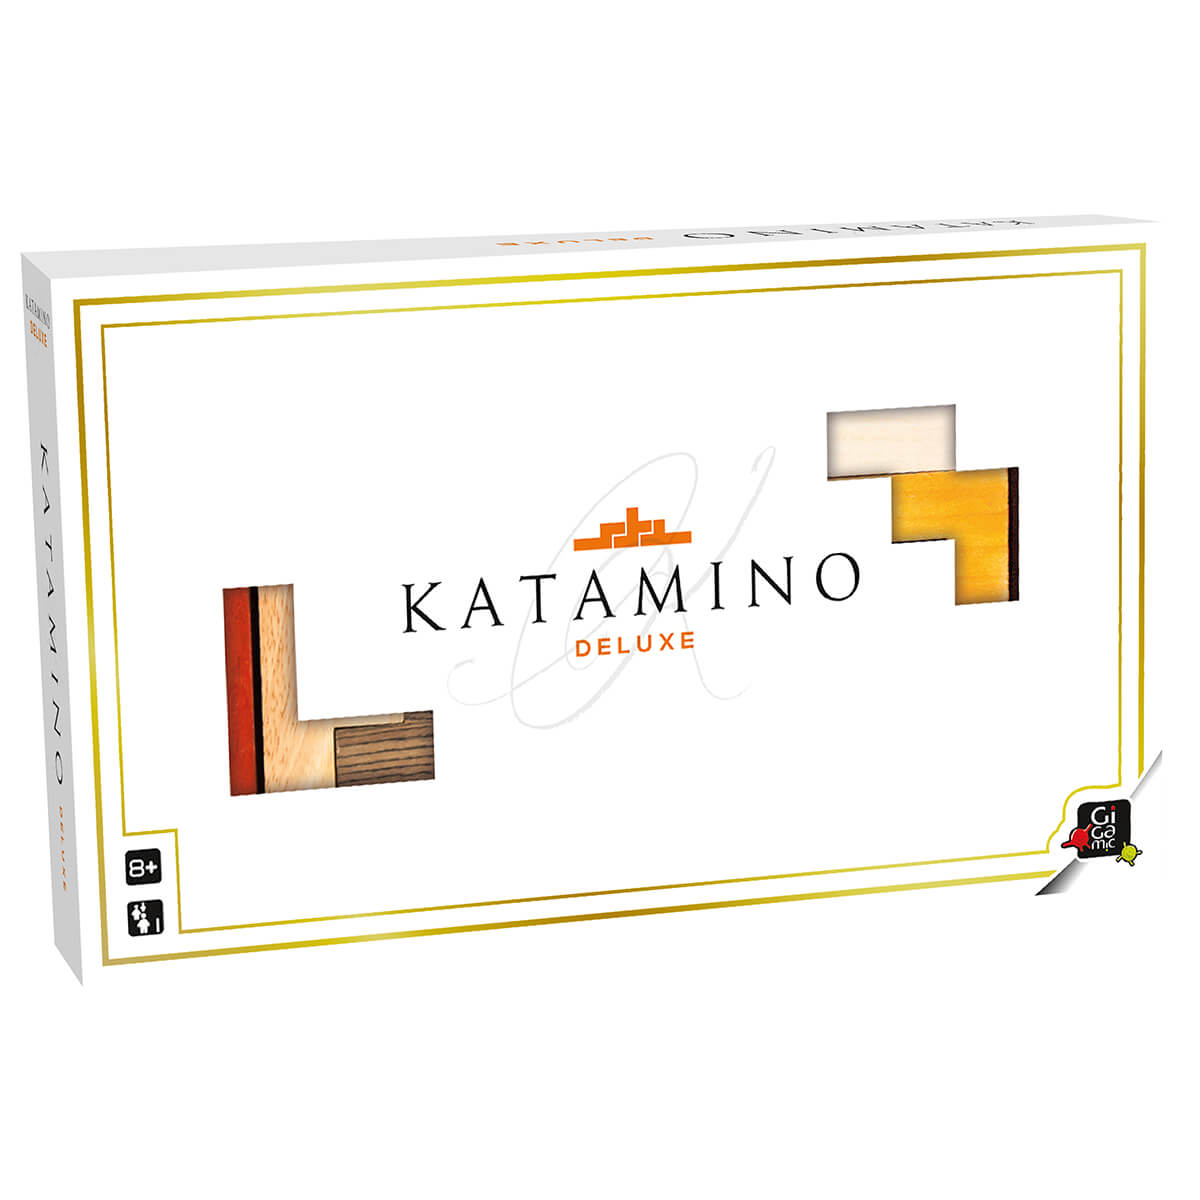 Gigamic Katamino Deluxe GZKL Board Game